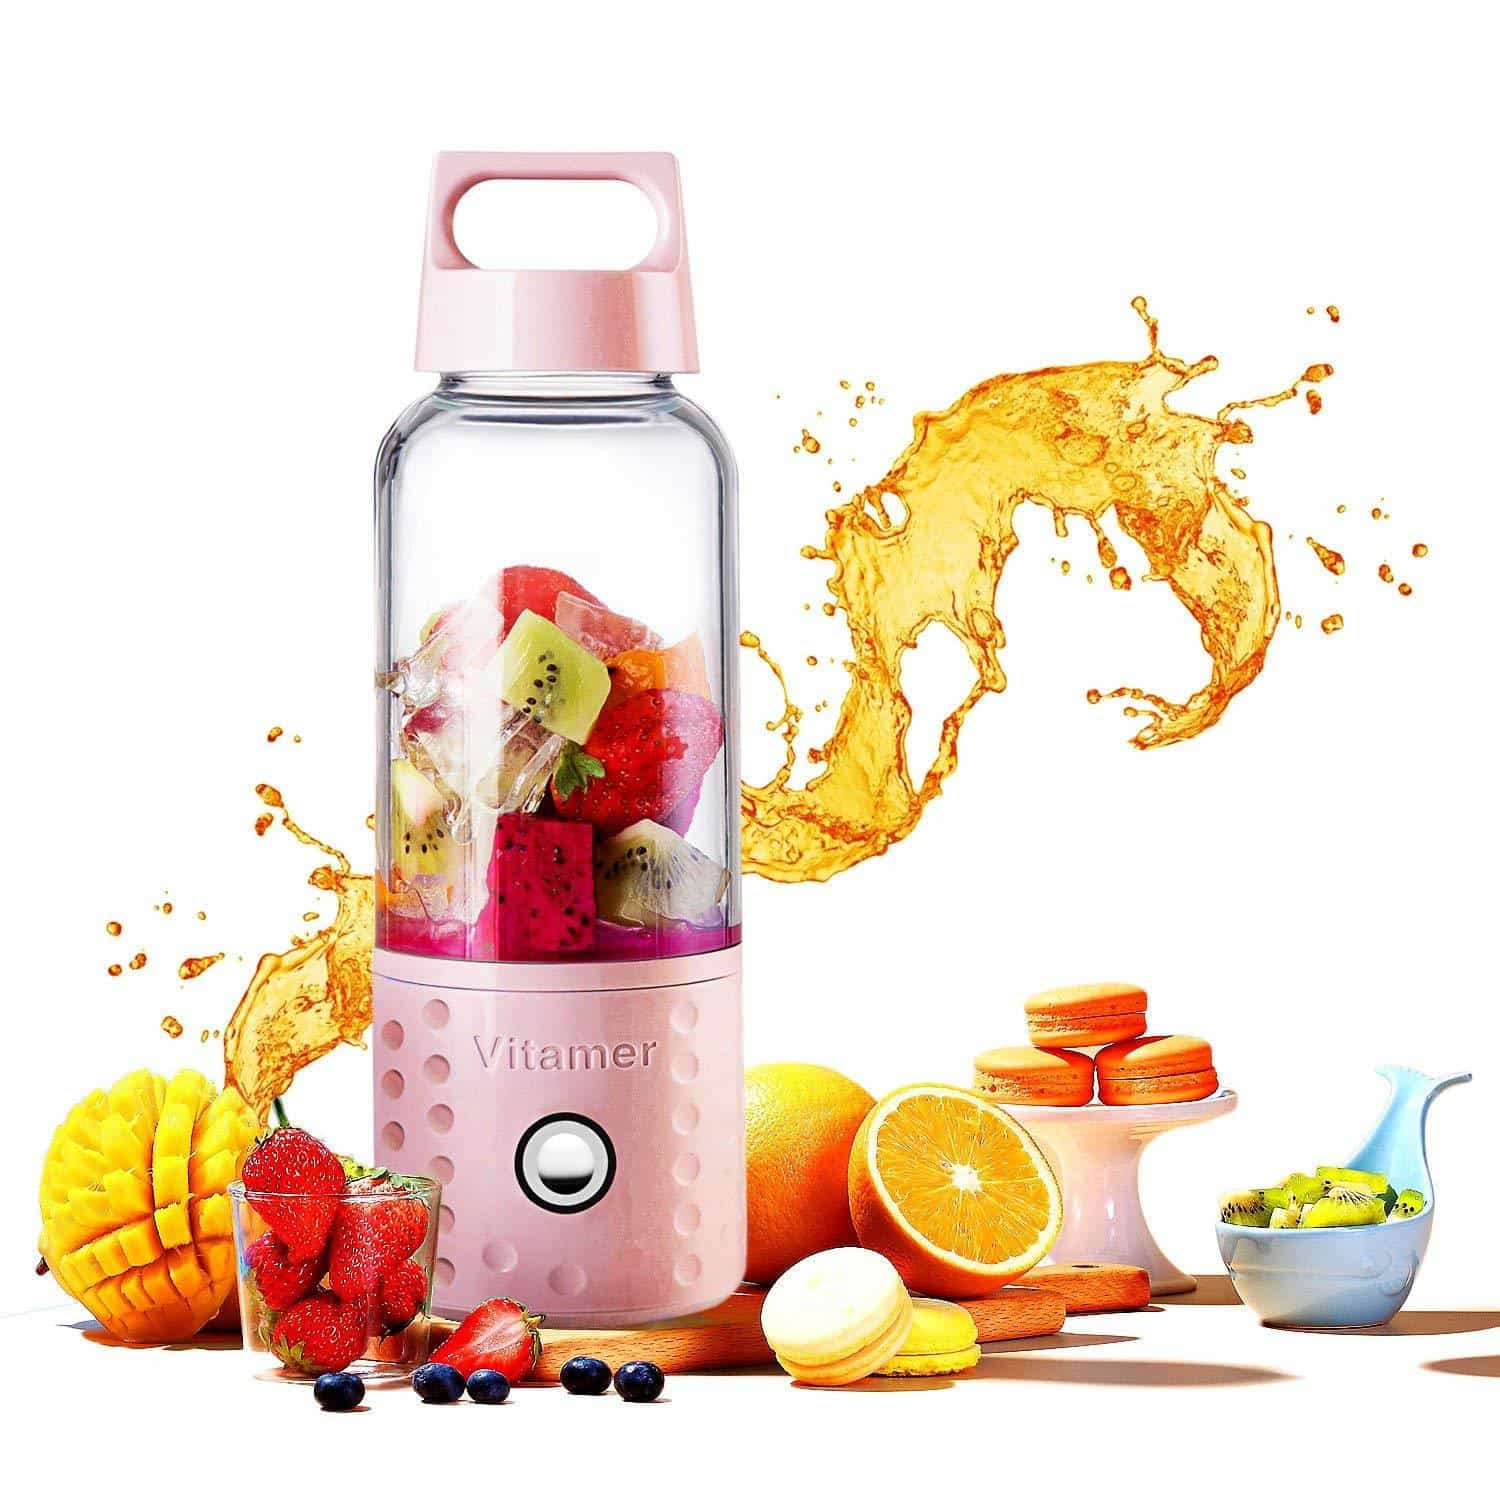 500ml Portable Blender, [variant_title], [option1], [option2], [option3] - anythinganyware